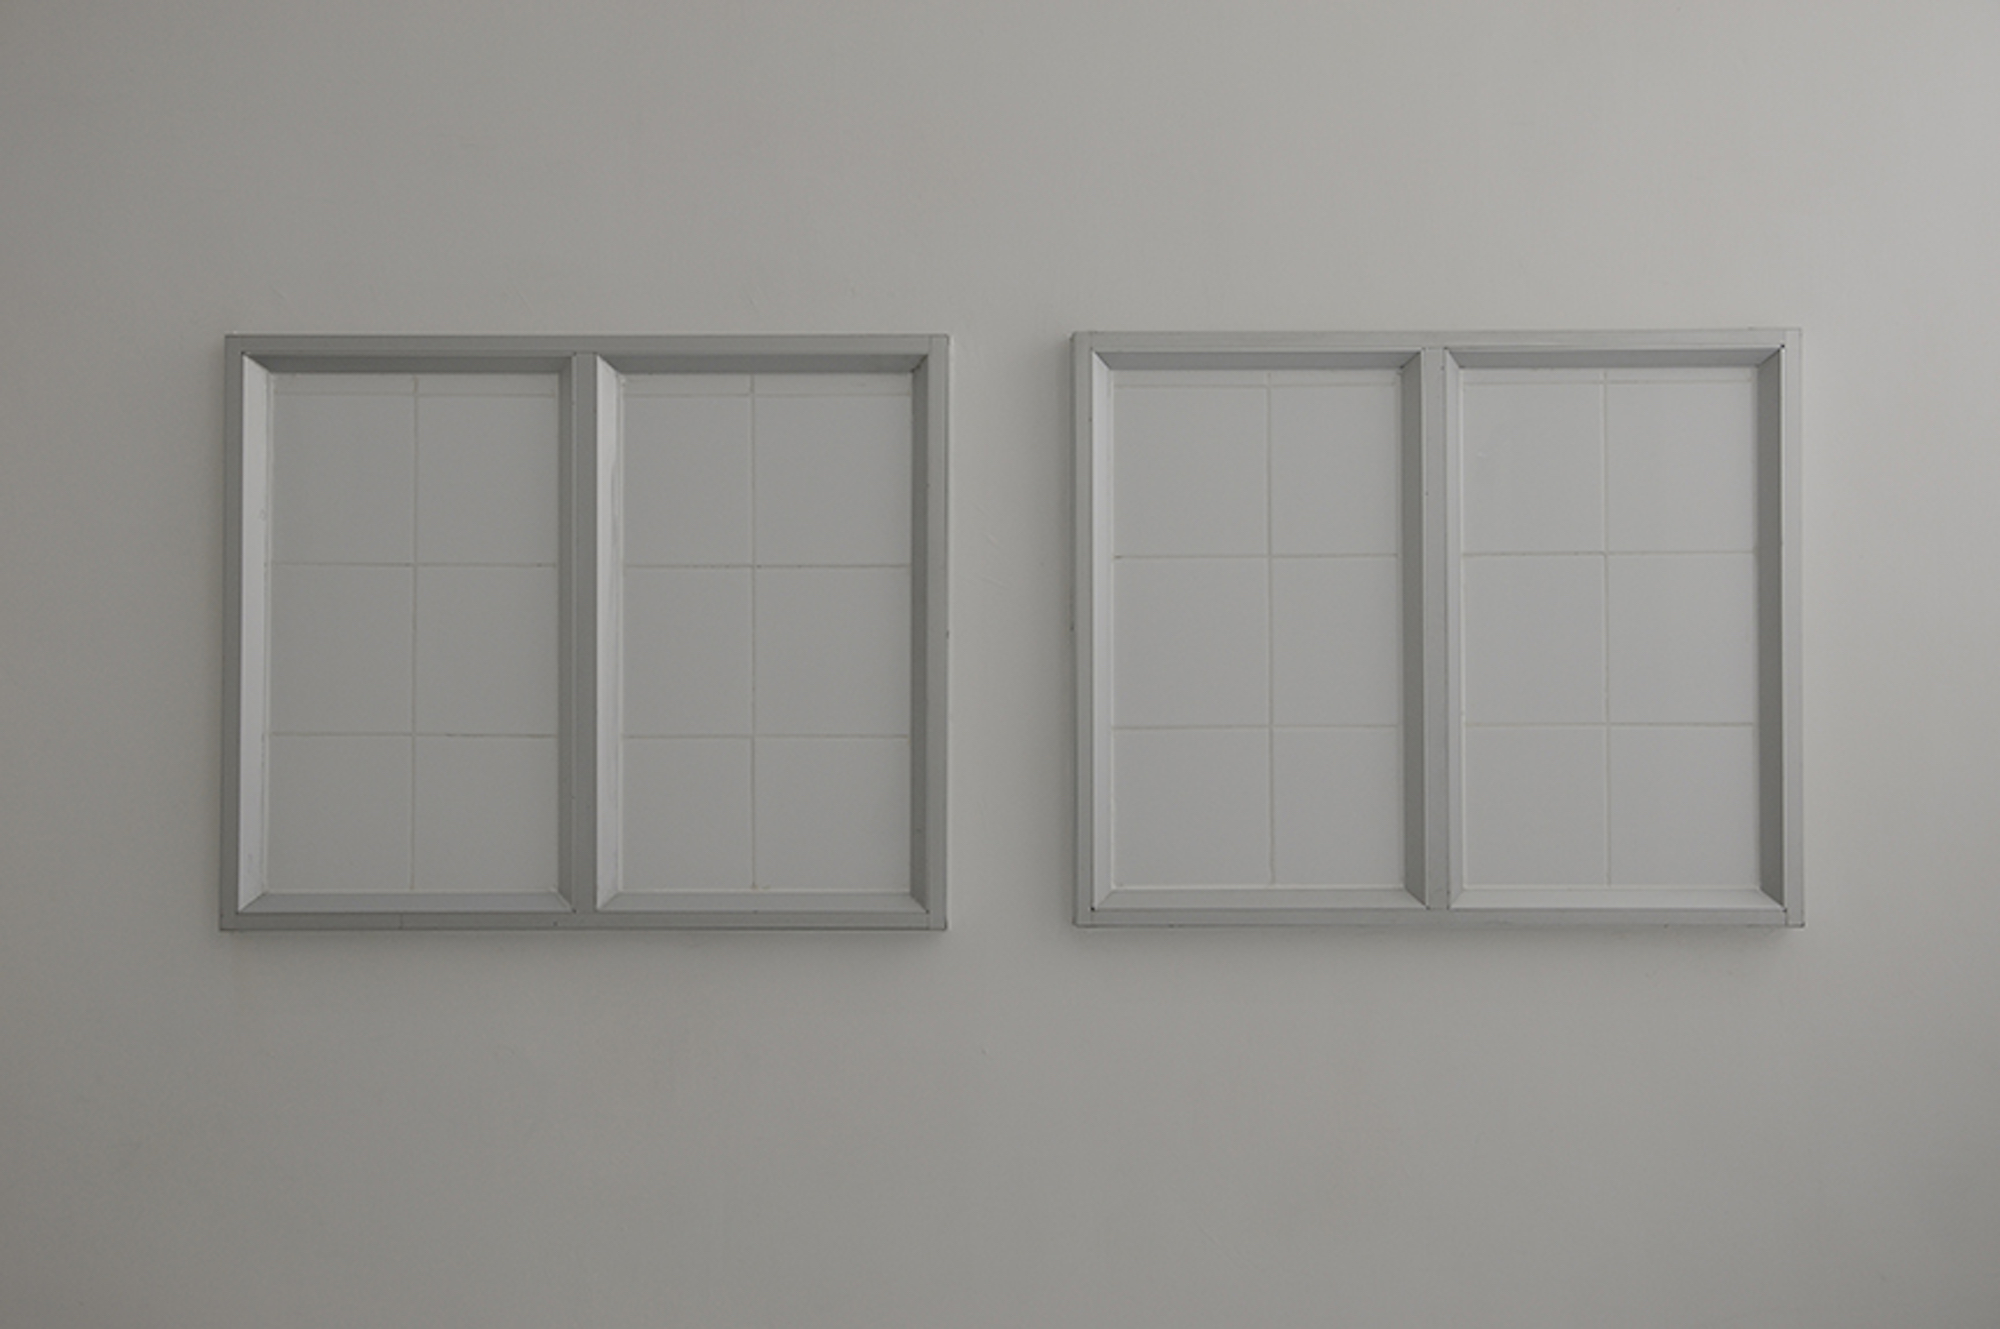 Nadim Abbas, Cataract, 2010. Ceramic tiles, aluminium window frames, recycling shower system, nylon curtains, stainless steel tubing. Dimensions variable. Image Courtesy of EXPERIMENTA, Heilbronn, DE.